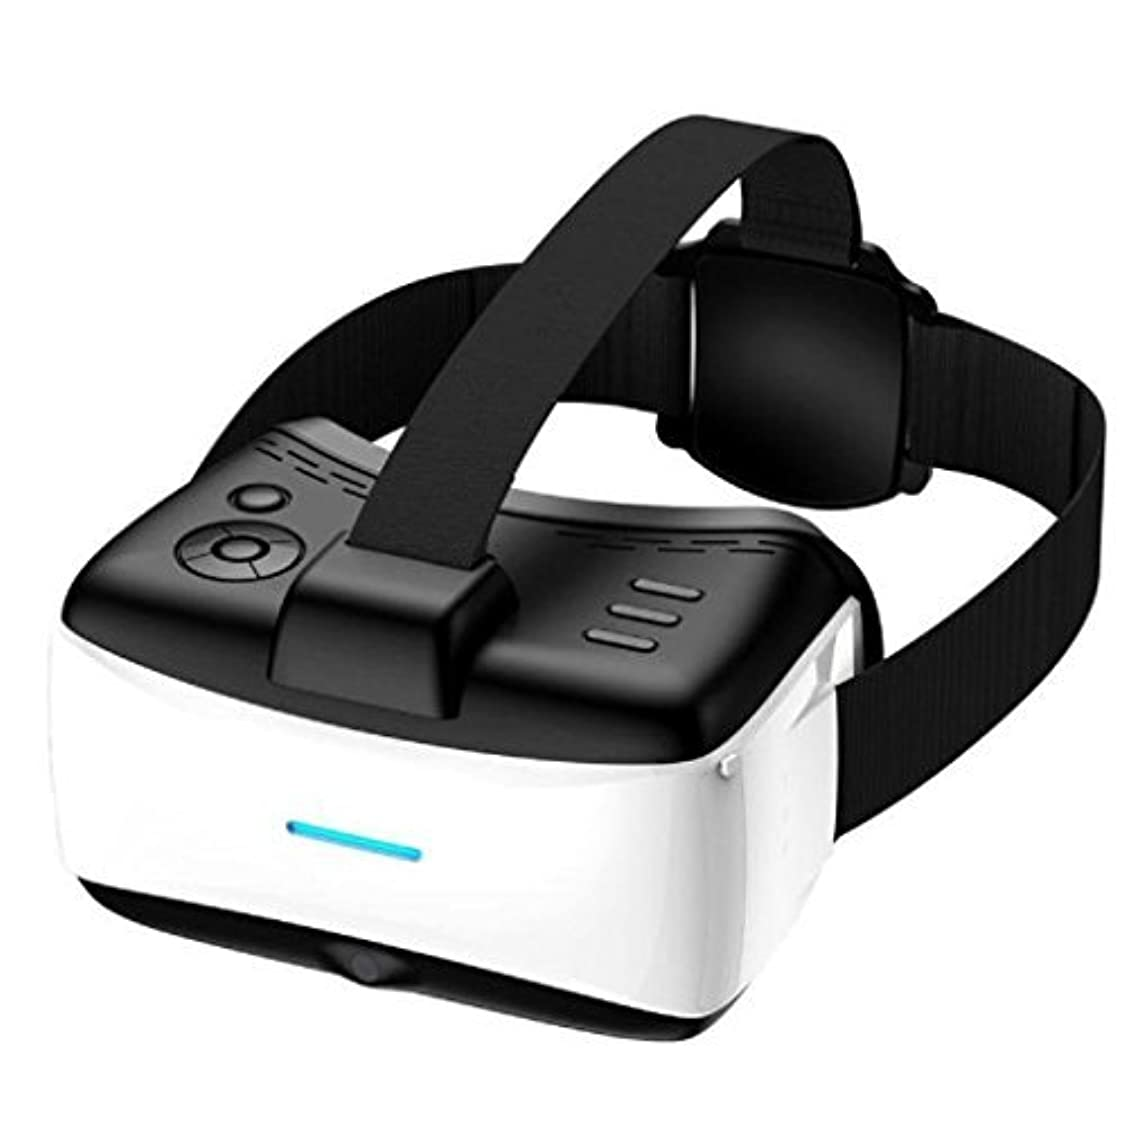 対人ブラケット無謀Anywa R4 1080P HD Virtual Reality 3D Glasses Quad-Core Android 4.4 1+8GB VR Headset Box by Anywa_01 [並行輸入品]